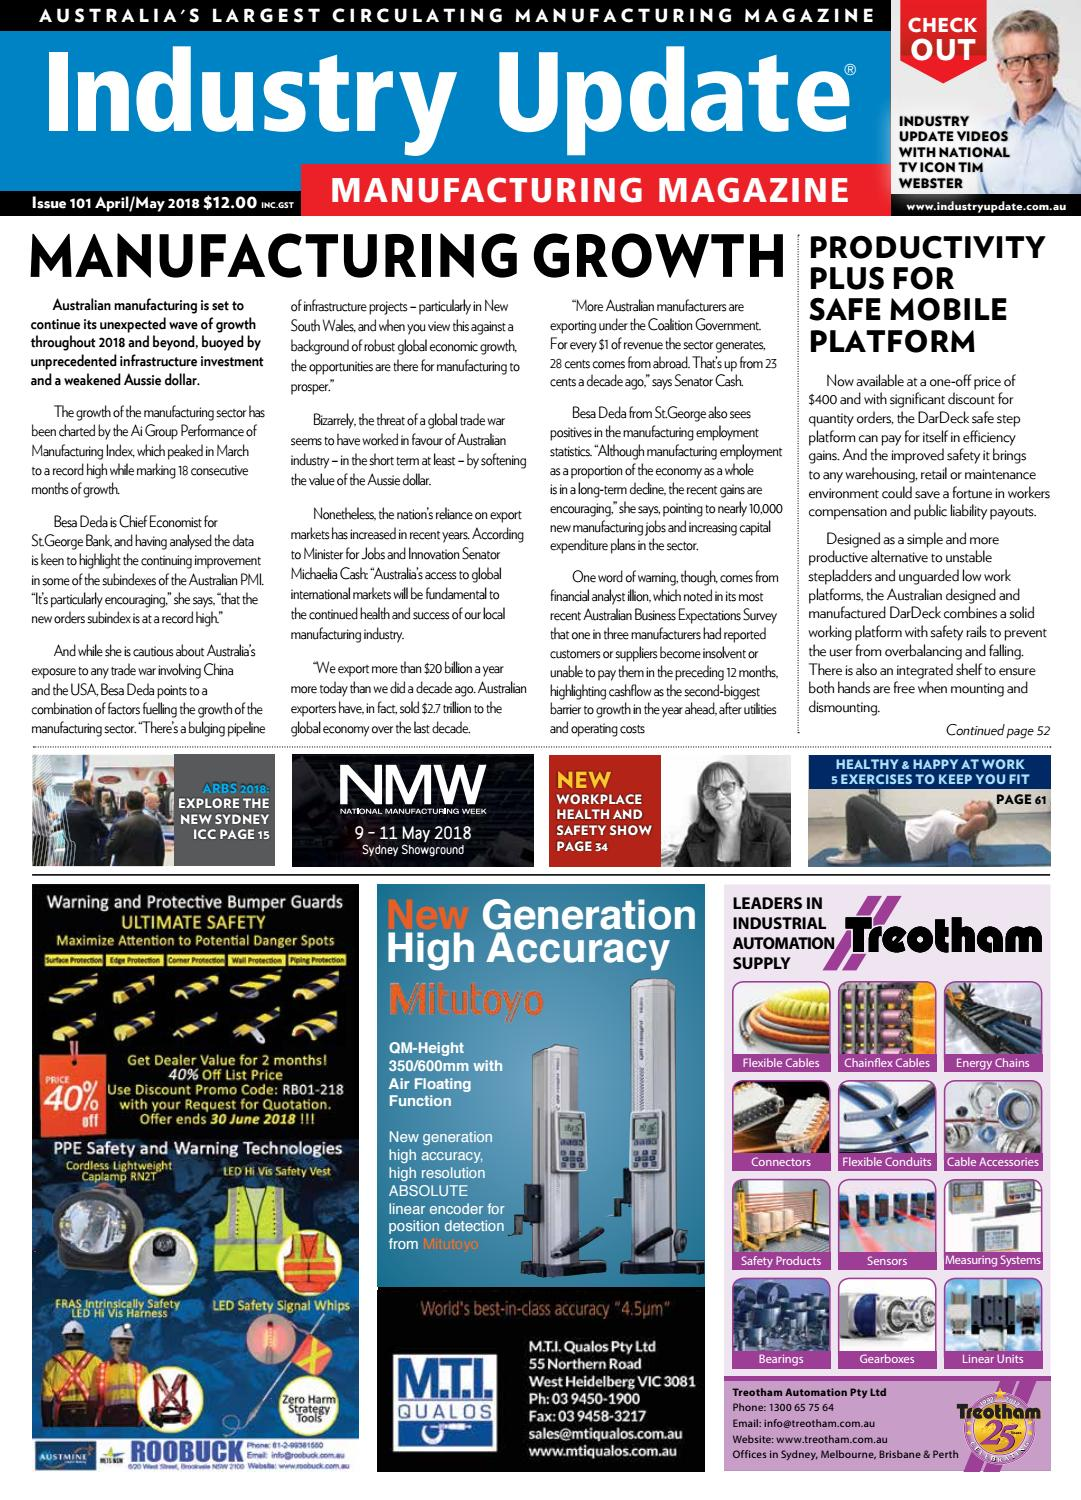 APRIL/MAY 2018 ISSUE 101 by Industry Update - issuu